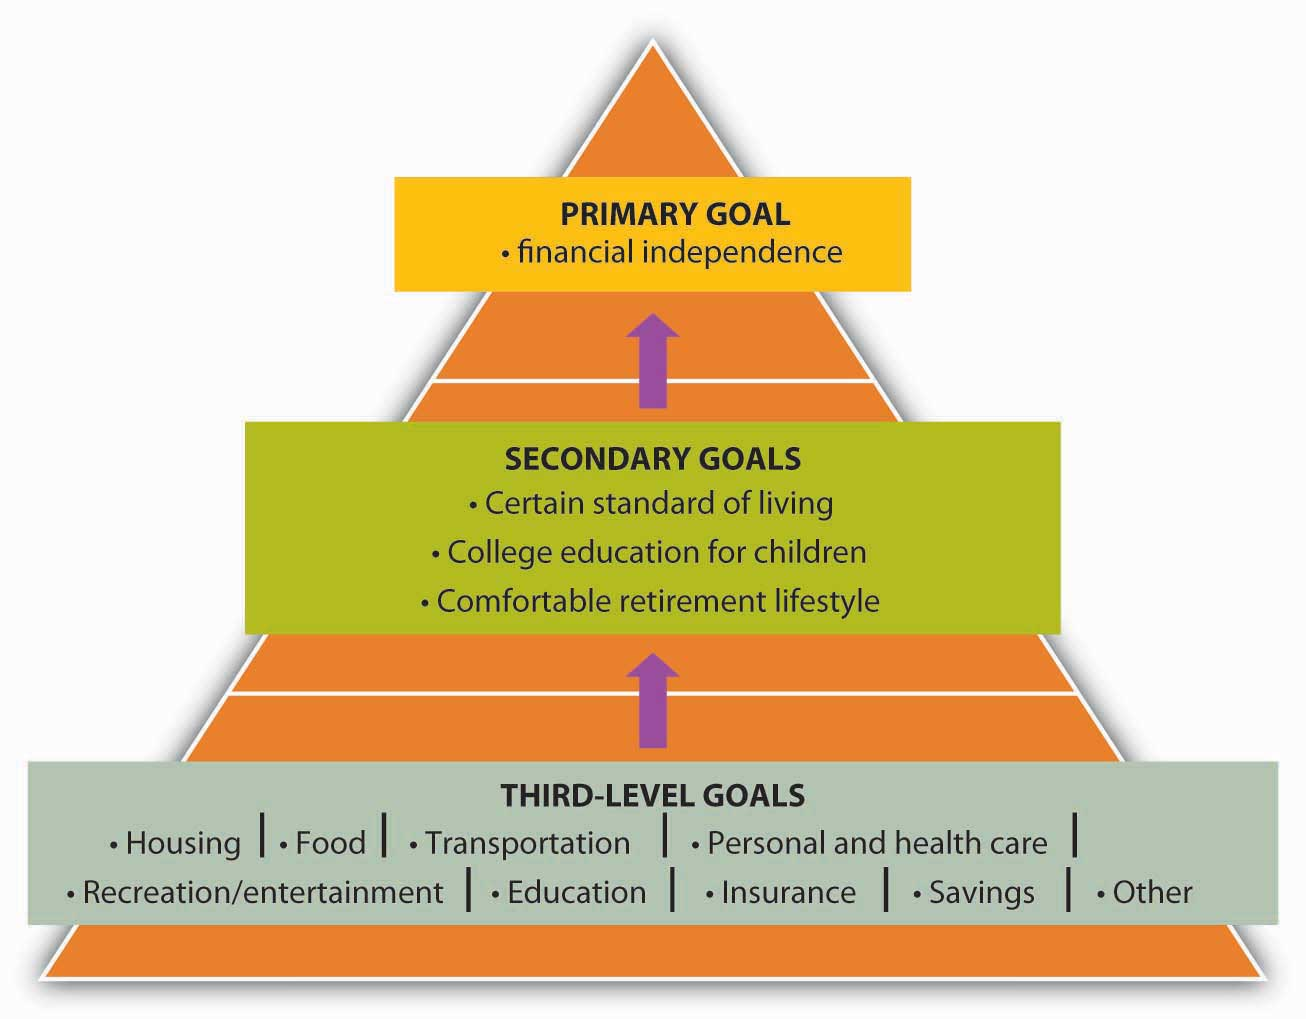 Three-Level Goals/Plans (Primary Goals, Secondary Goals, Third-Level Goals)